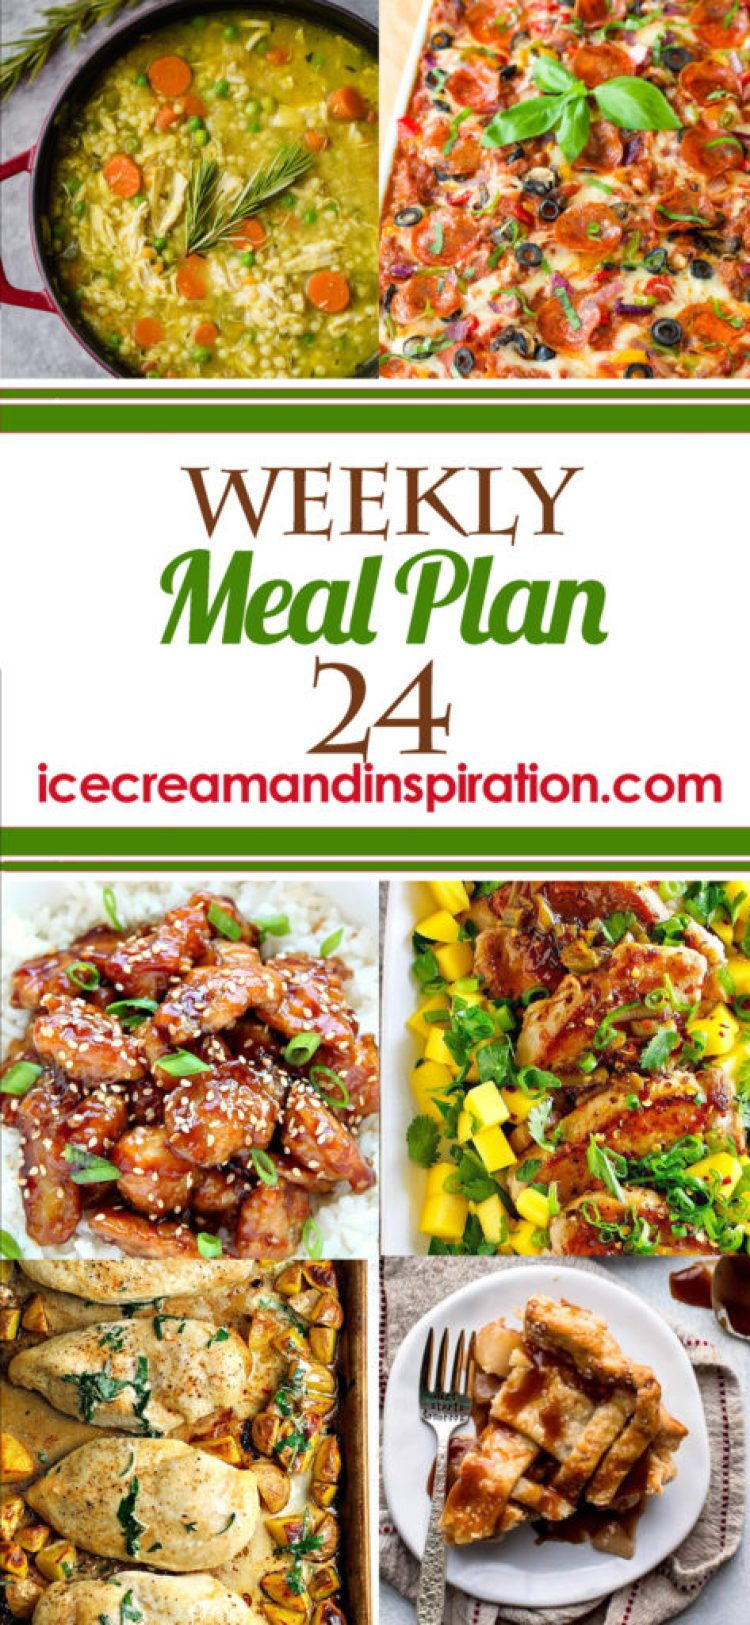 This week's meal plan has recipes for Supreme Pizza Lasagna, Easy Sesame Chicken, Pork Tenderloin with Mango Lime Salsa, and more! Plus, recipes for bread and dessert.